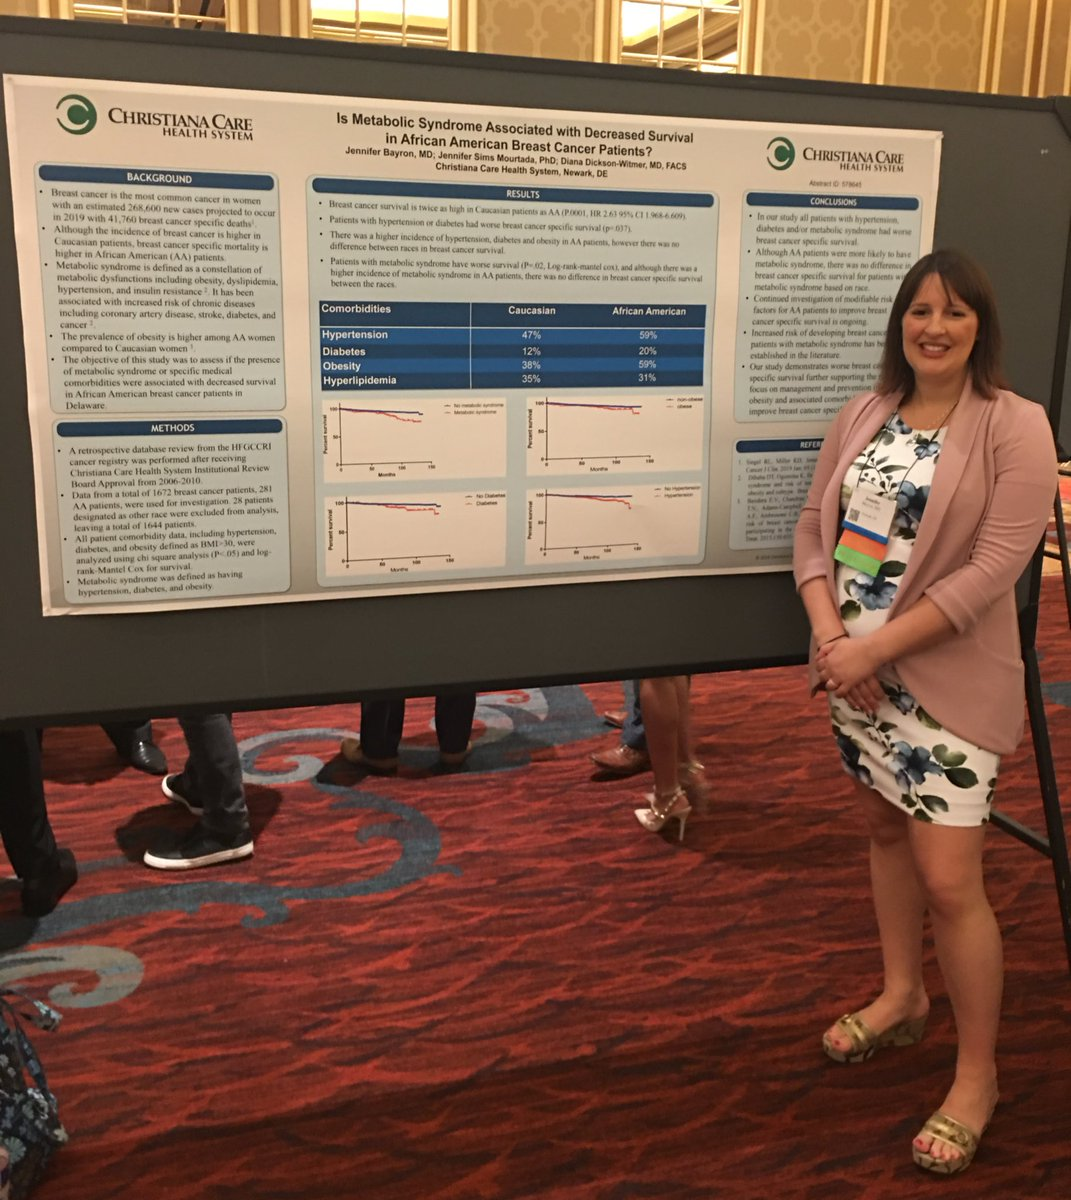 Dr Bayron presenting at #ASBrS19 about metabolic syndrome and survival in African American patients @ASBrS. Congrats! #surgtweeting #surgicalresearch #surgresidency